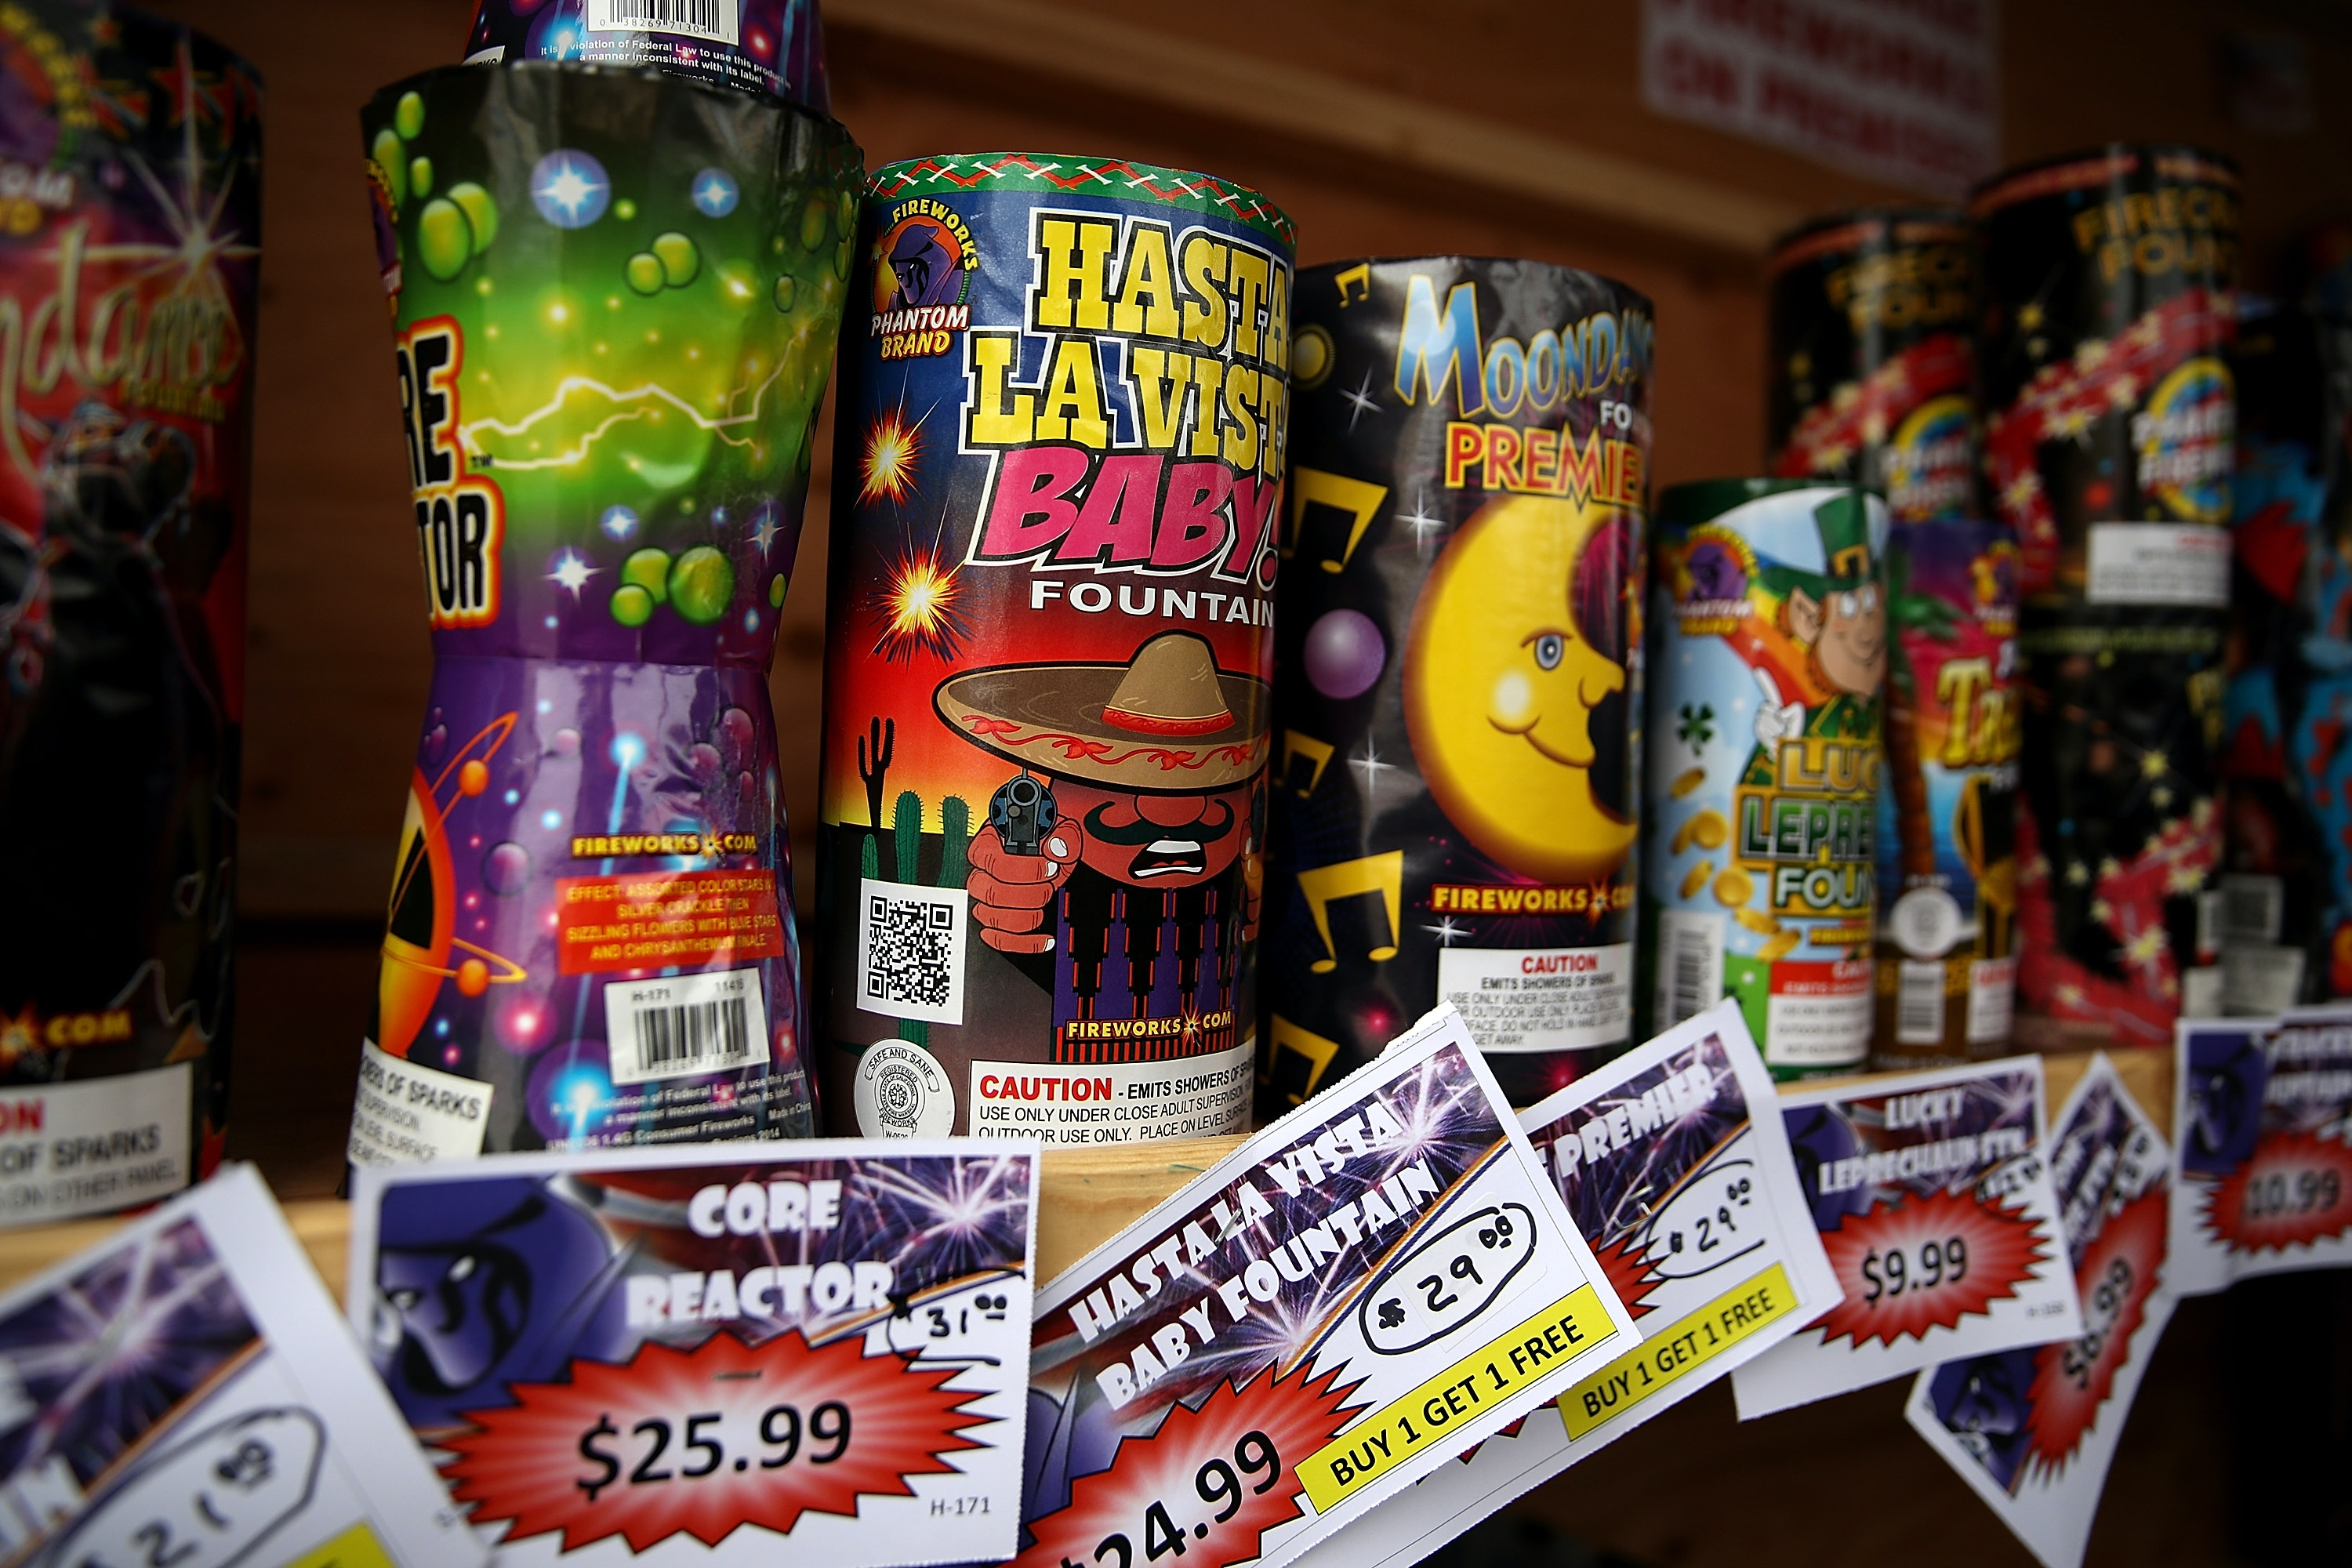 Are Fireworks Legal In Connecticut? Only Two Types Are Permitted